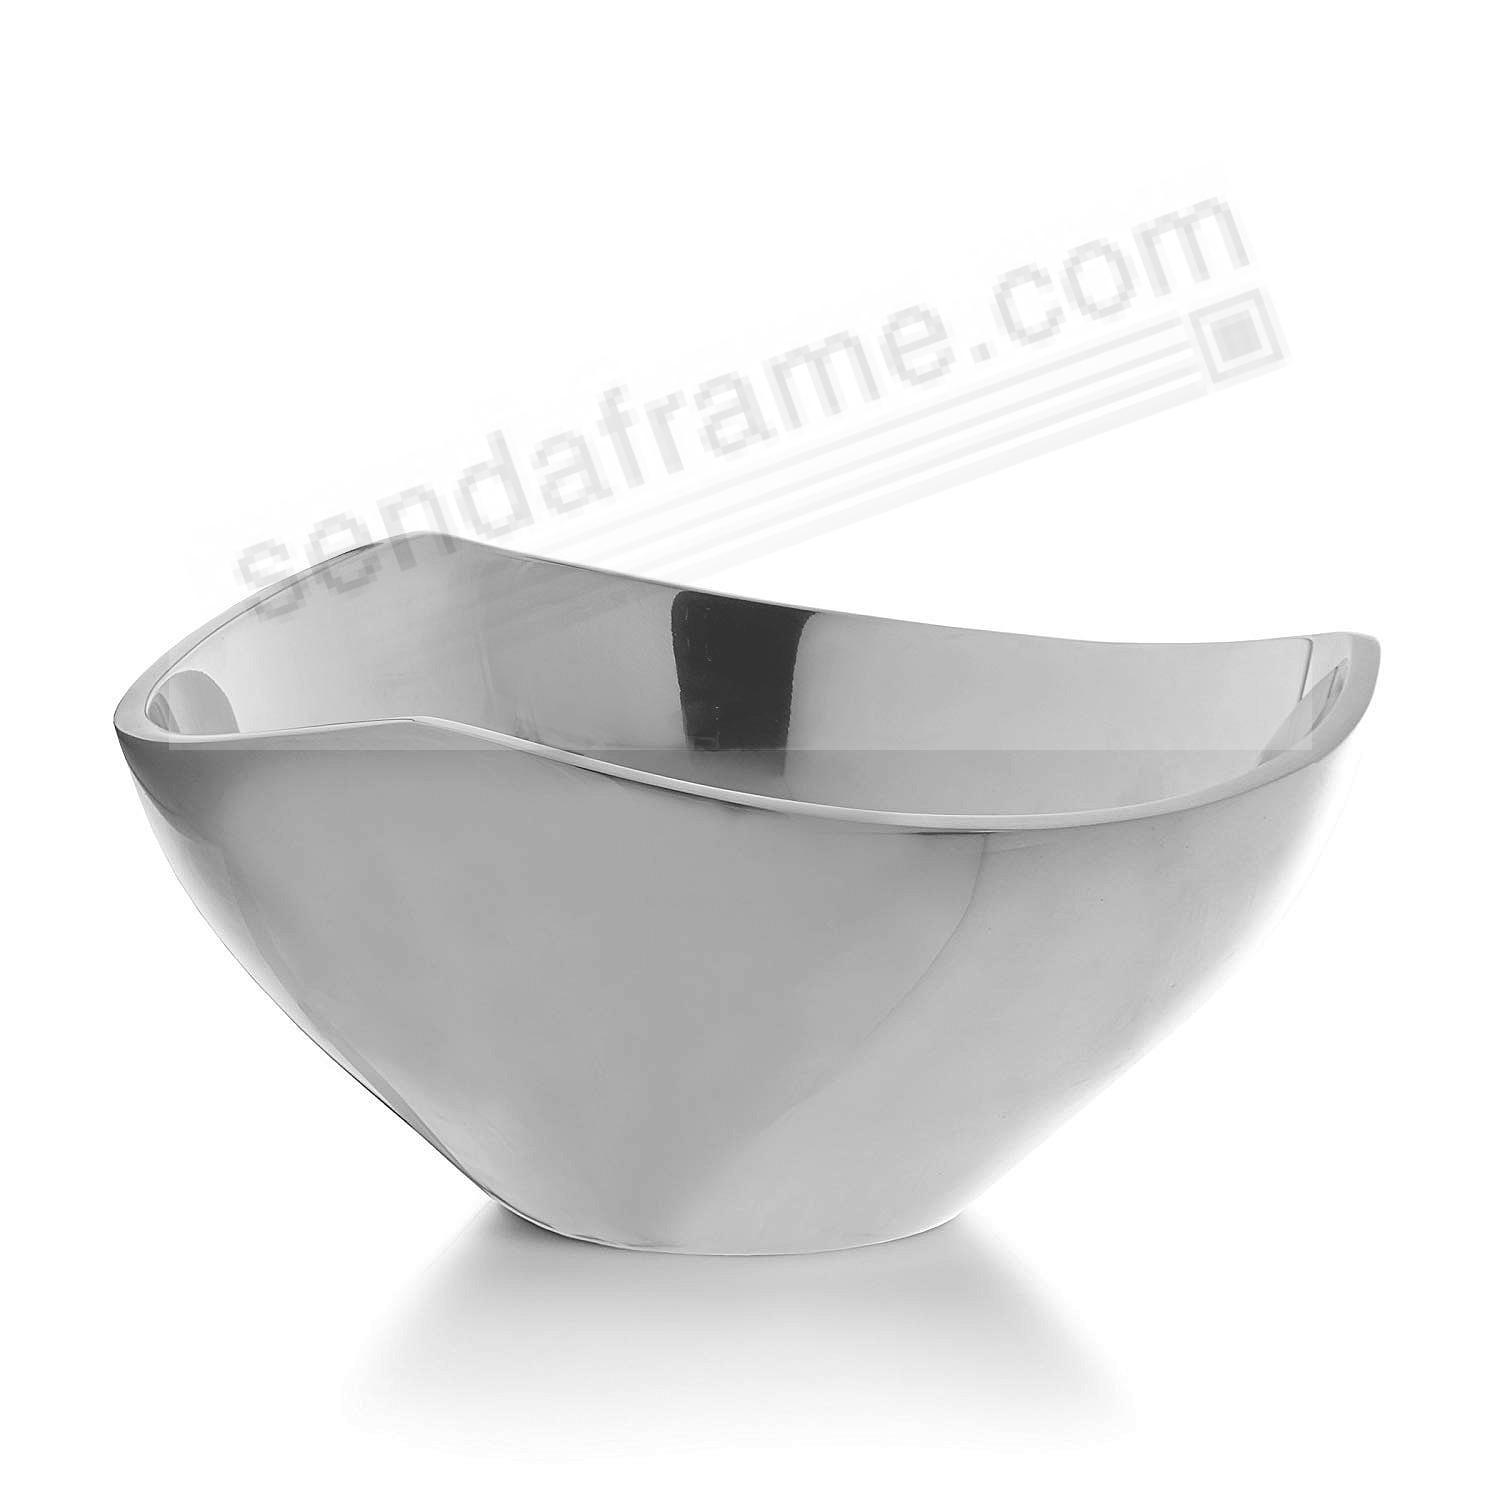 The Original TRI-CORNER BOWL 3-qt/11-Inch crafted by Nambe®